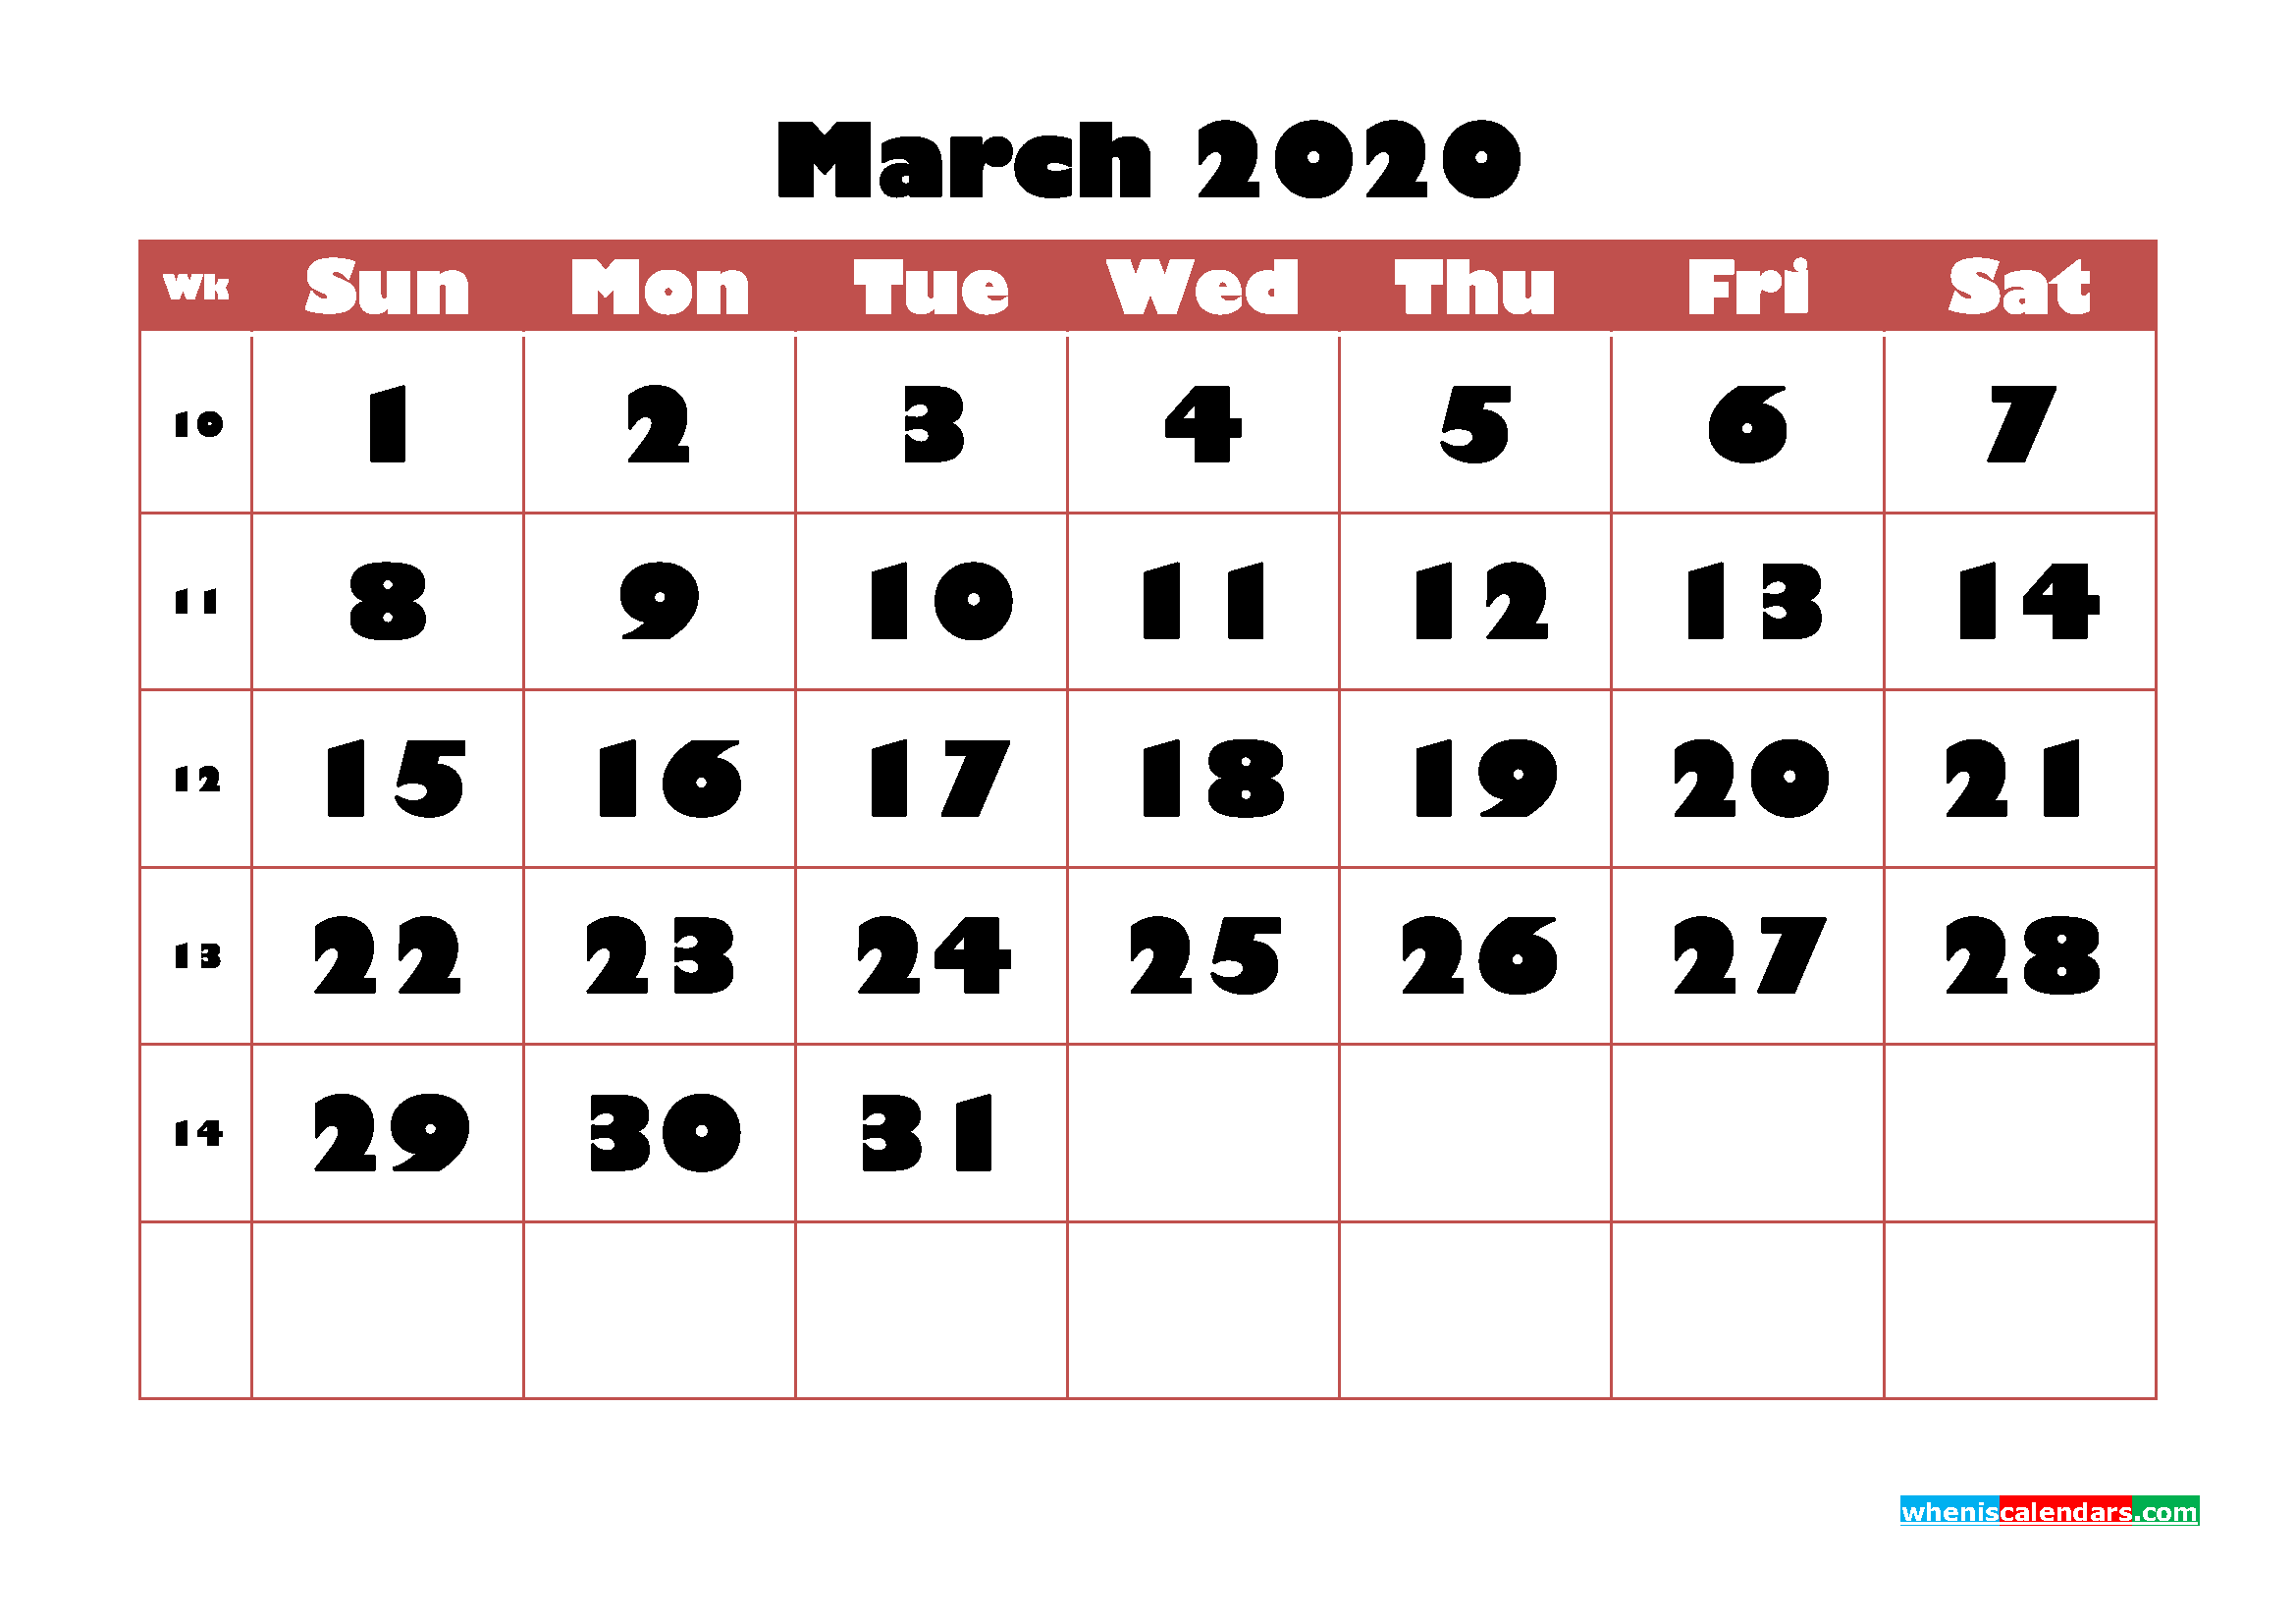 March Blank Calendar 2020 Printable Word, PDF, PNG